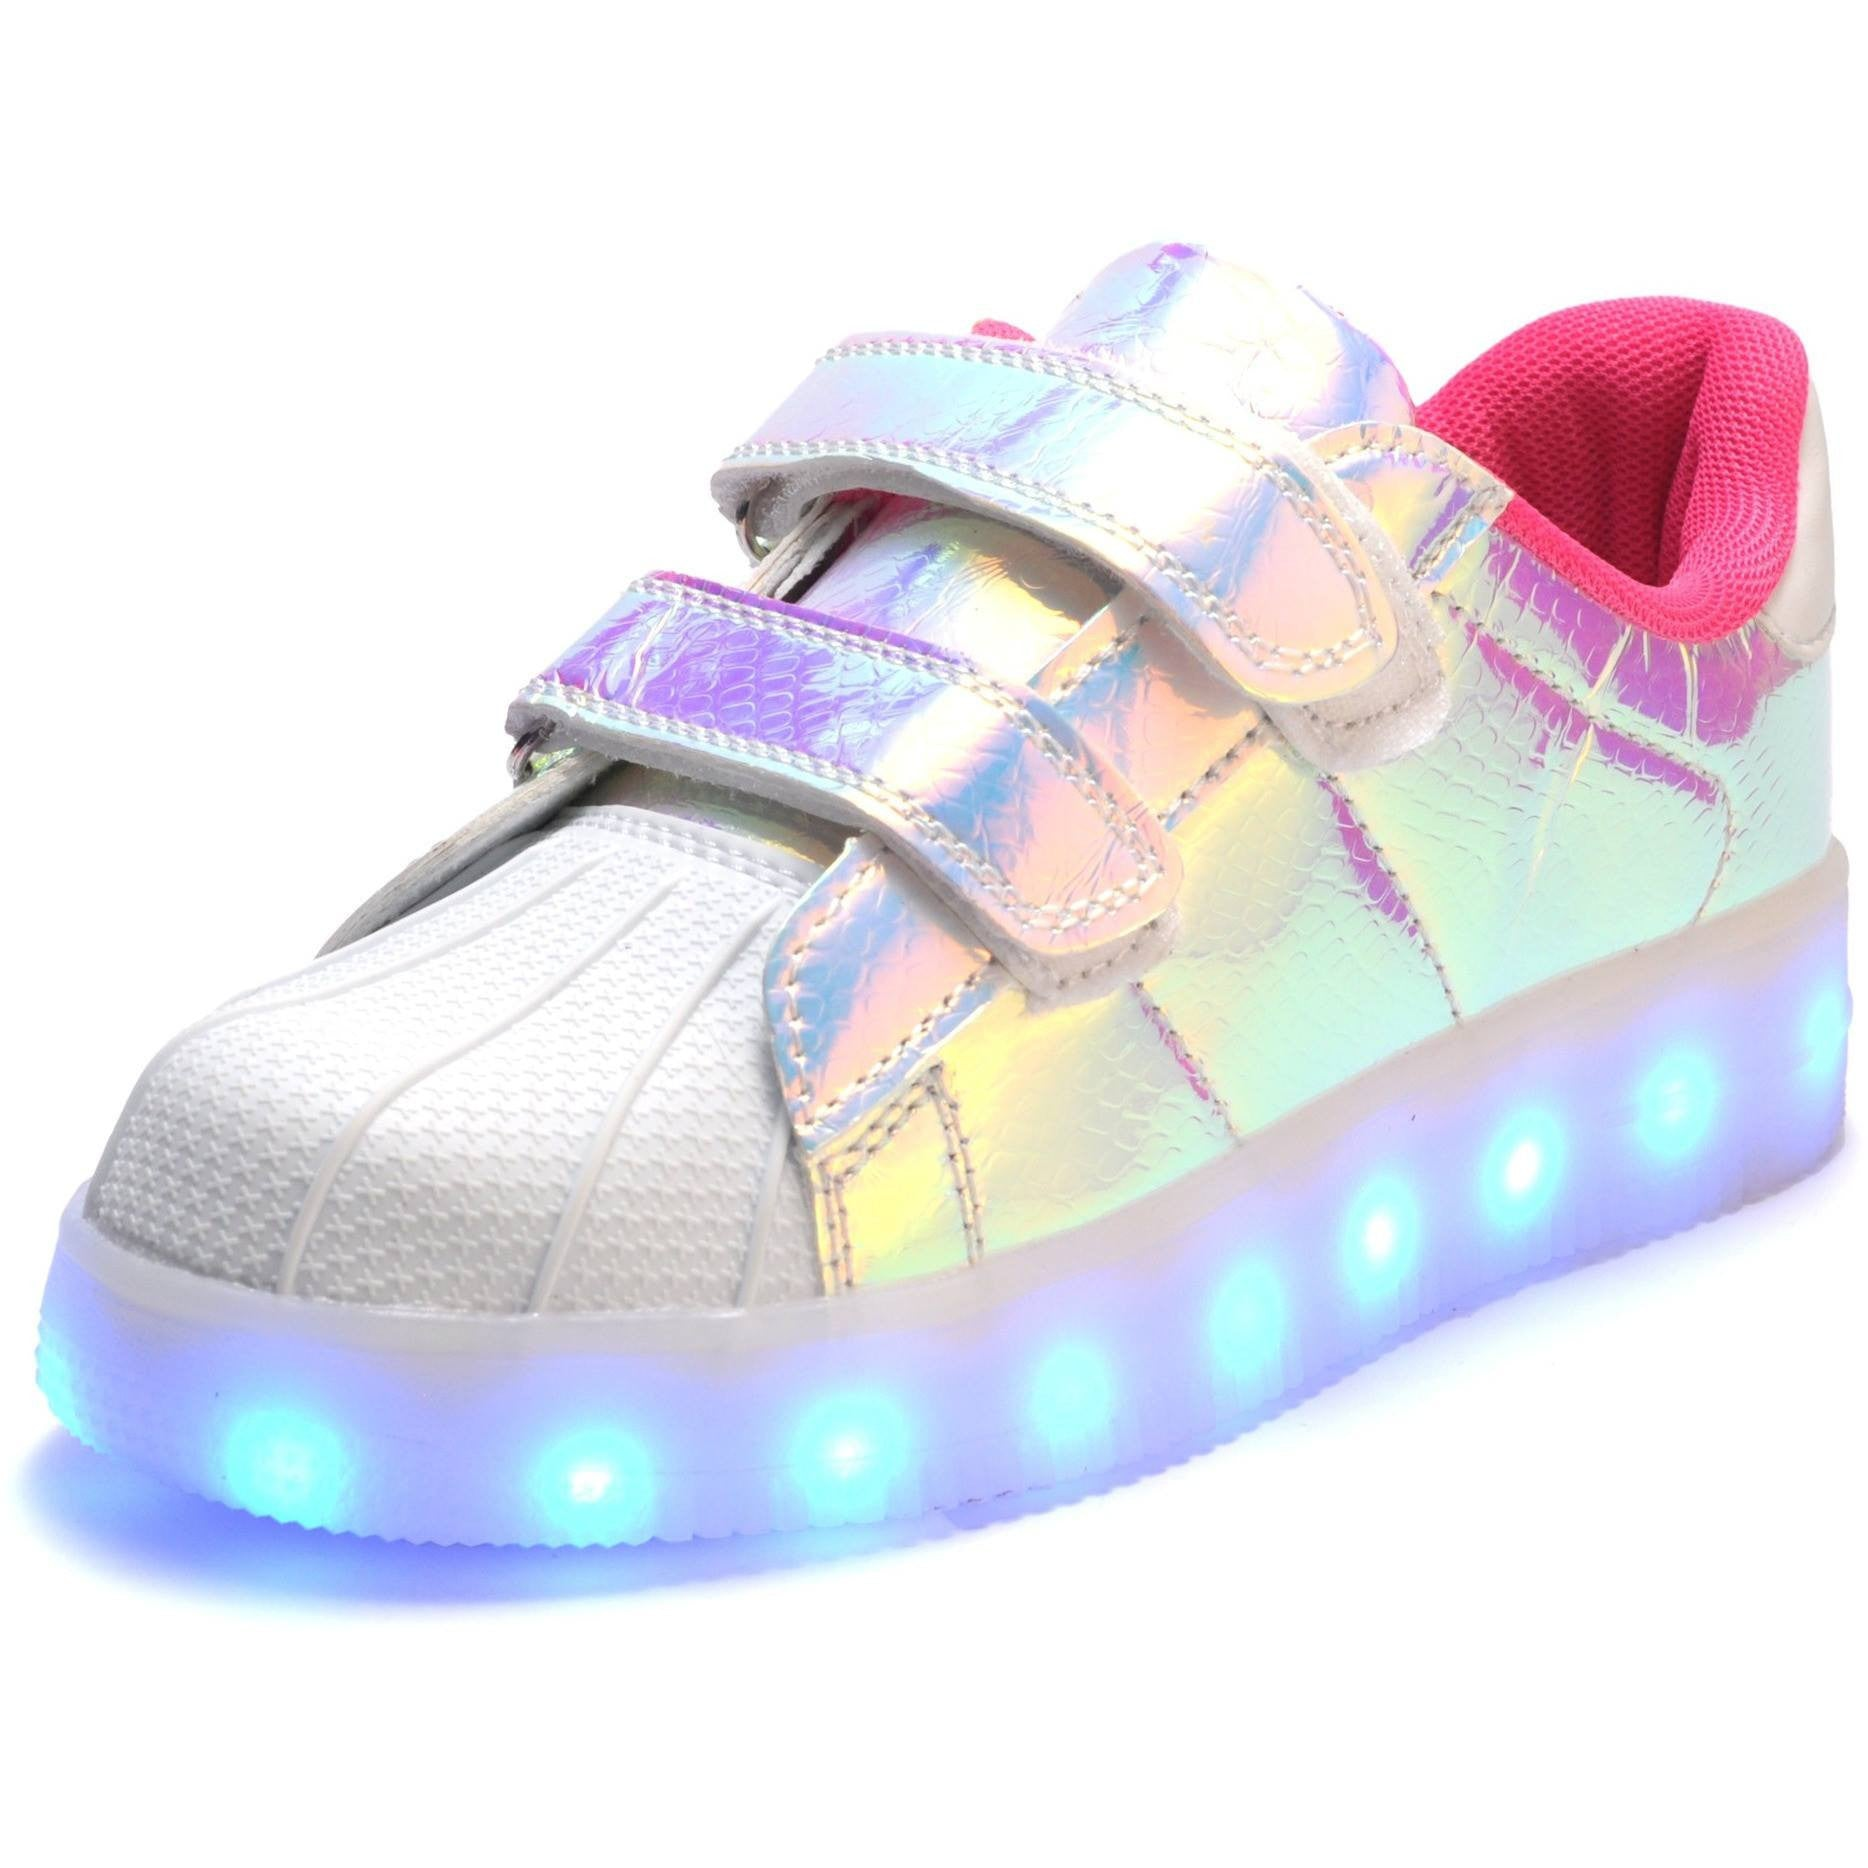 Kids Pink Hologram LED Light Up Shoes - Rave Rebel